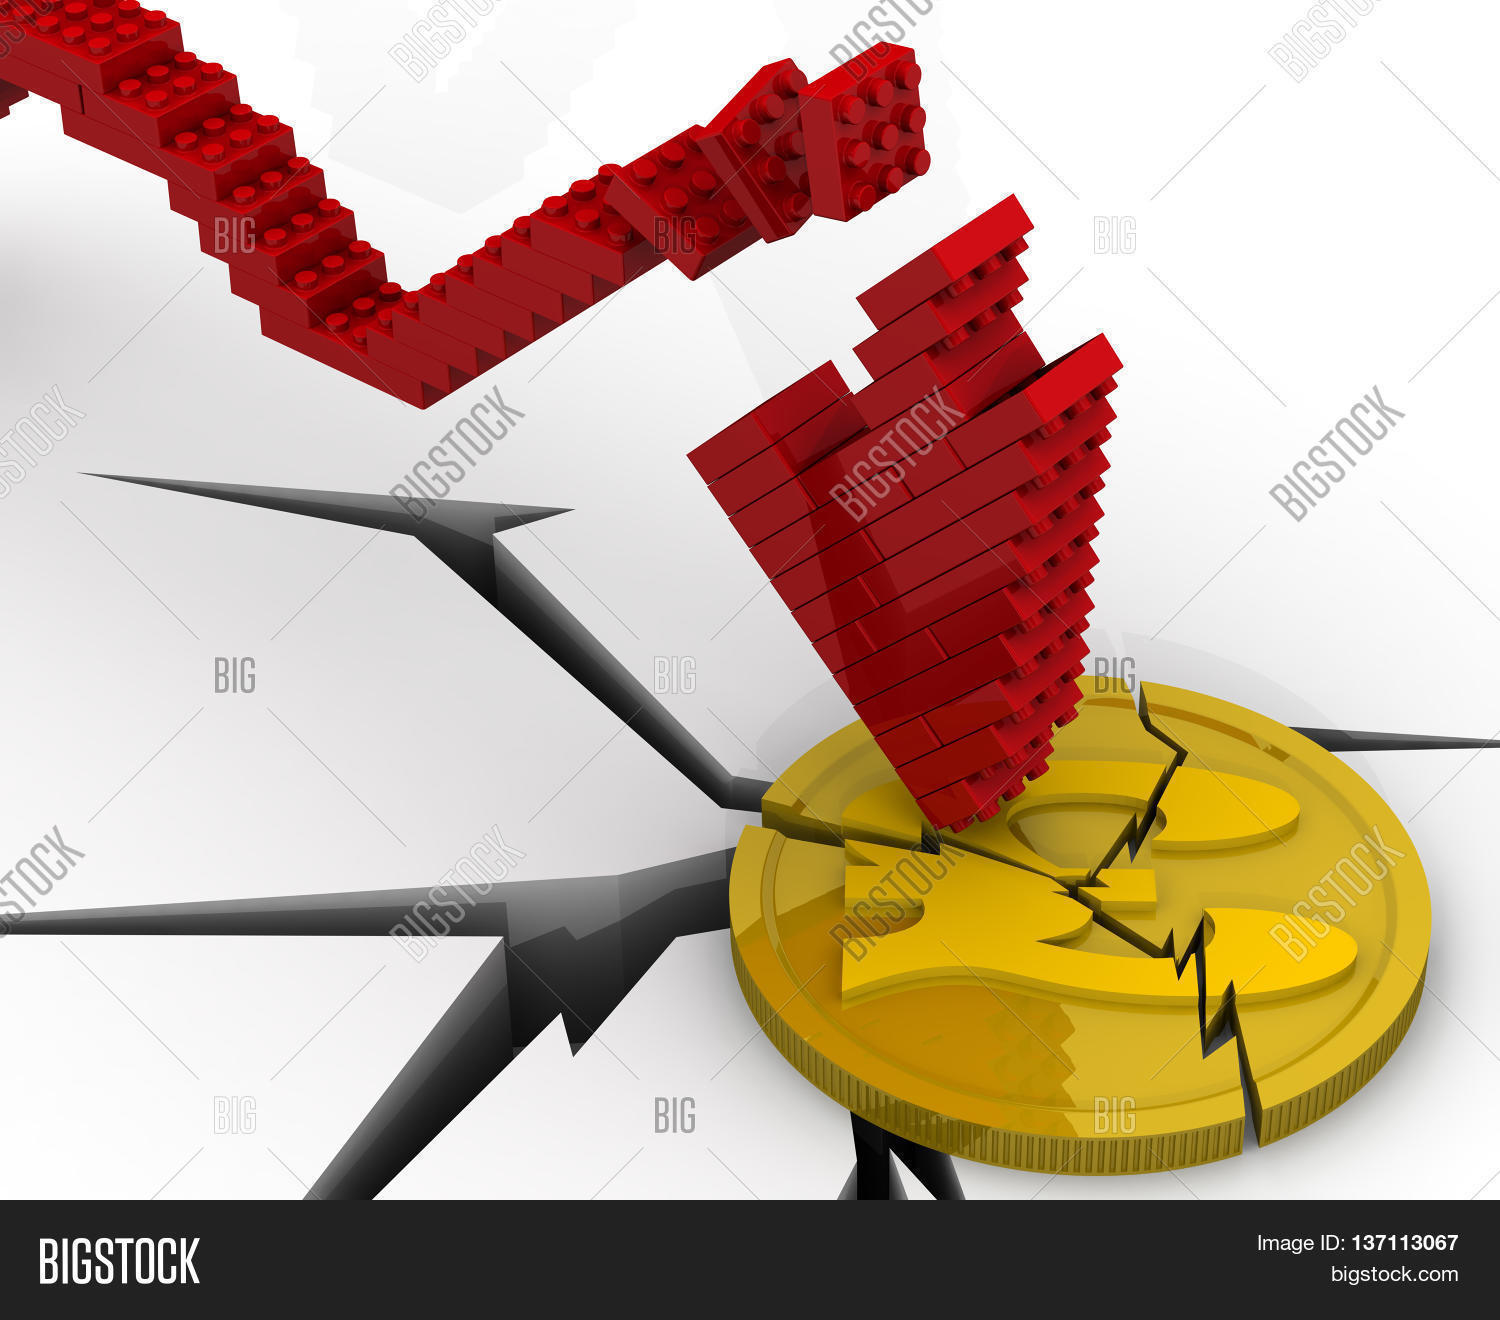 The Crisis Of The Uk Economy Cracked Coin With The Symbol Of The